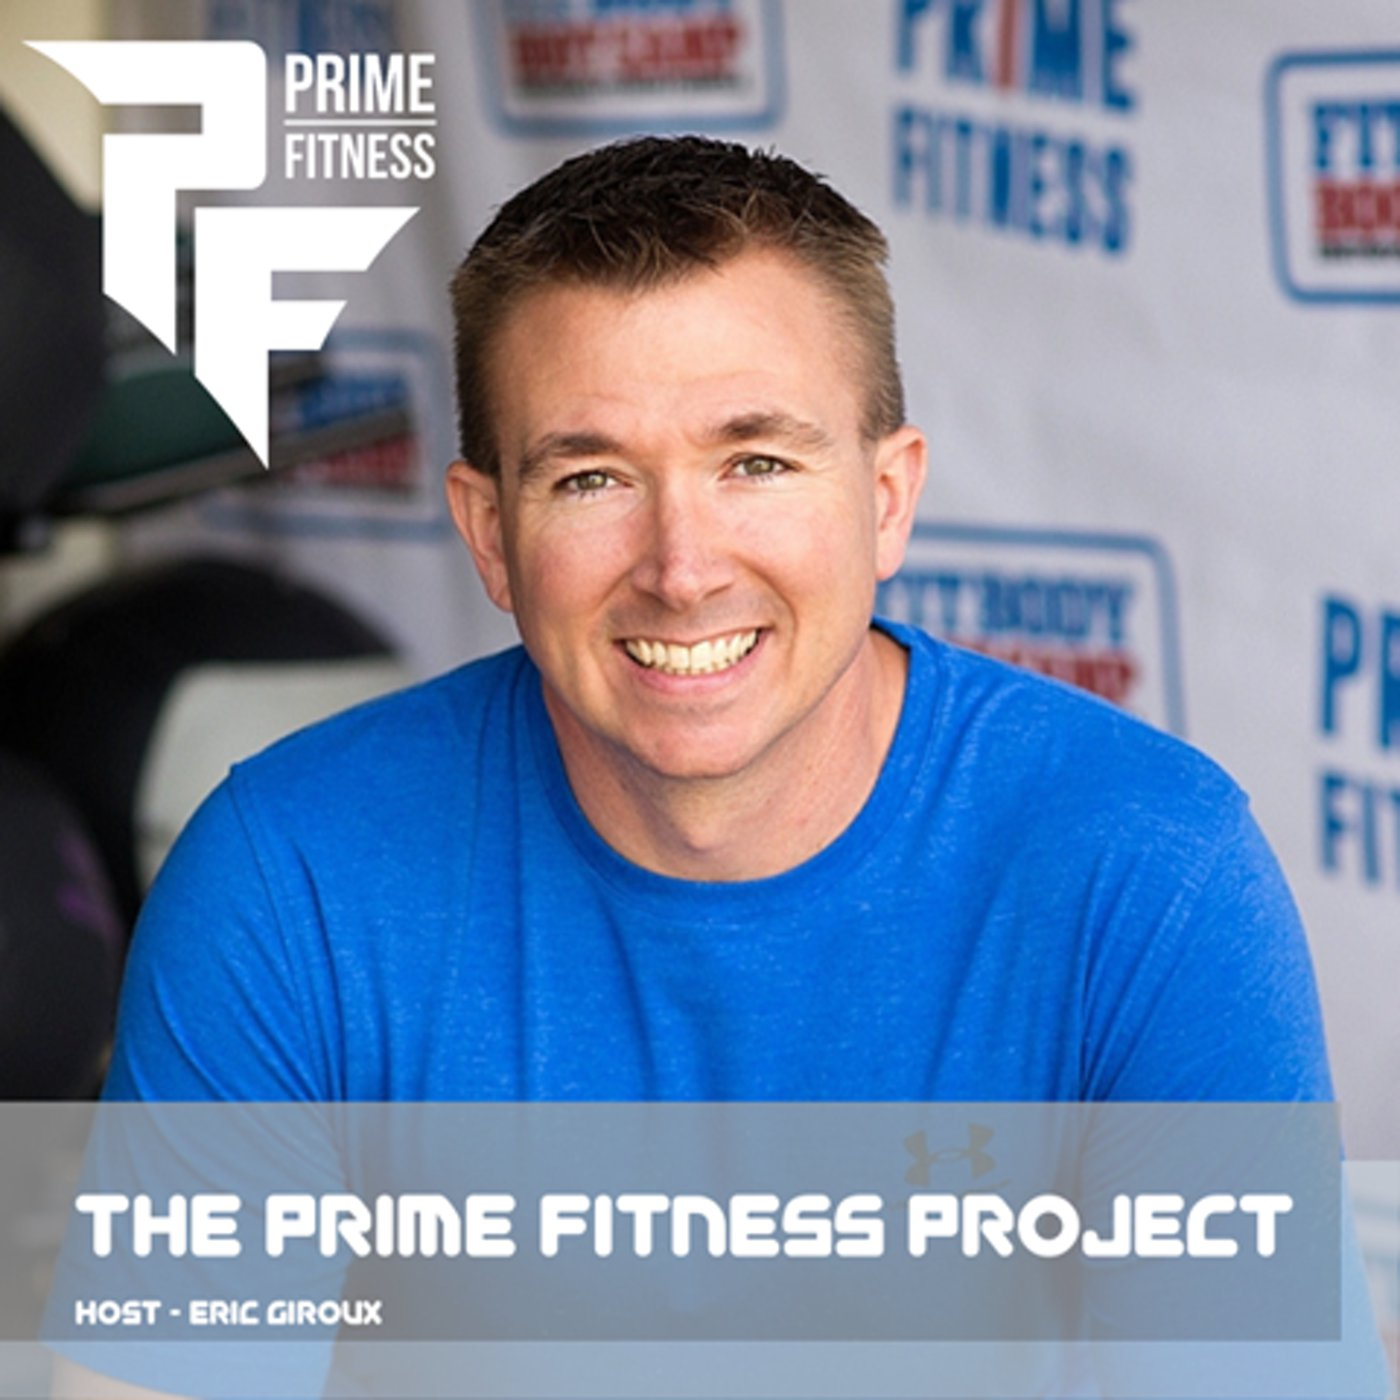 The Prime Fitness Project